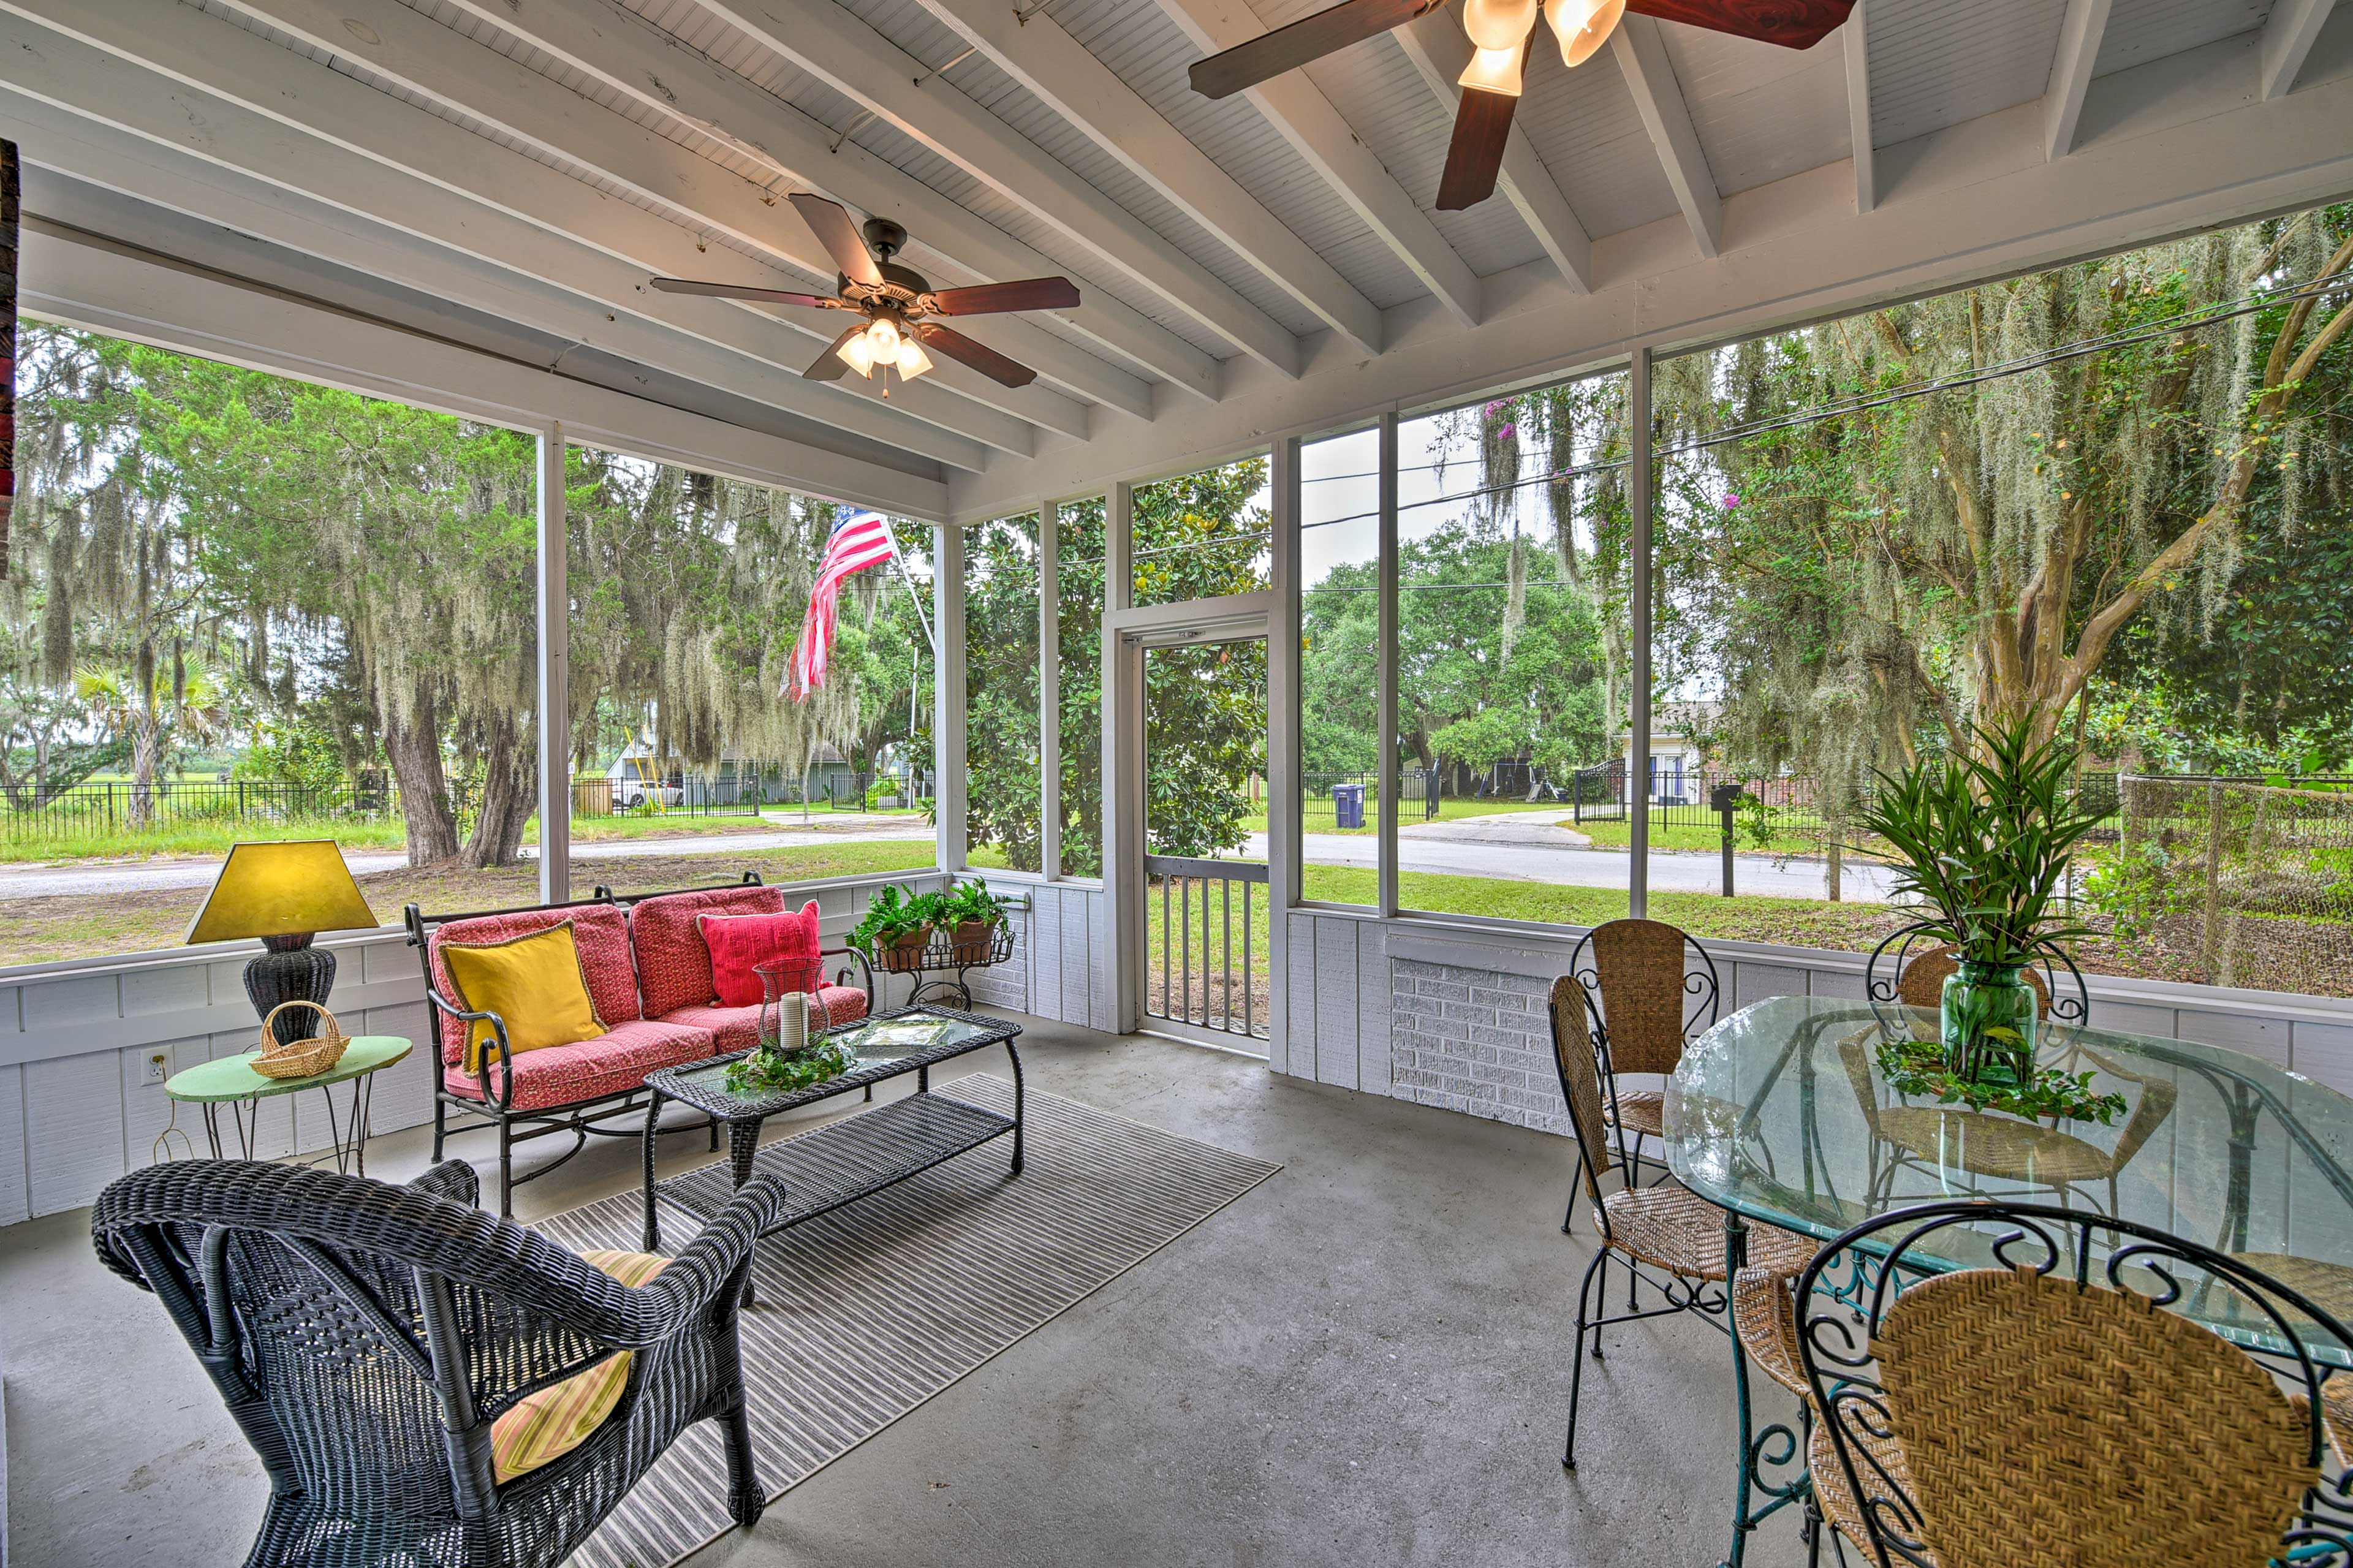 Enjoy your time outside on the screened-in porch.